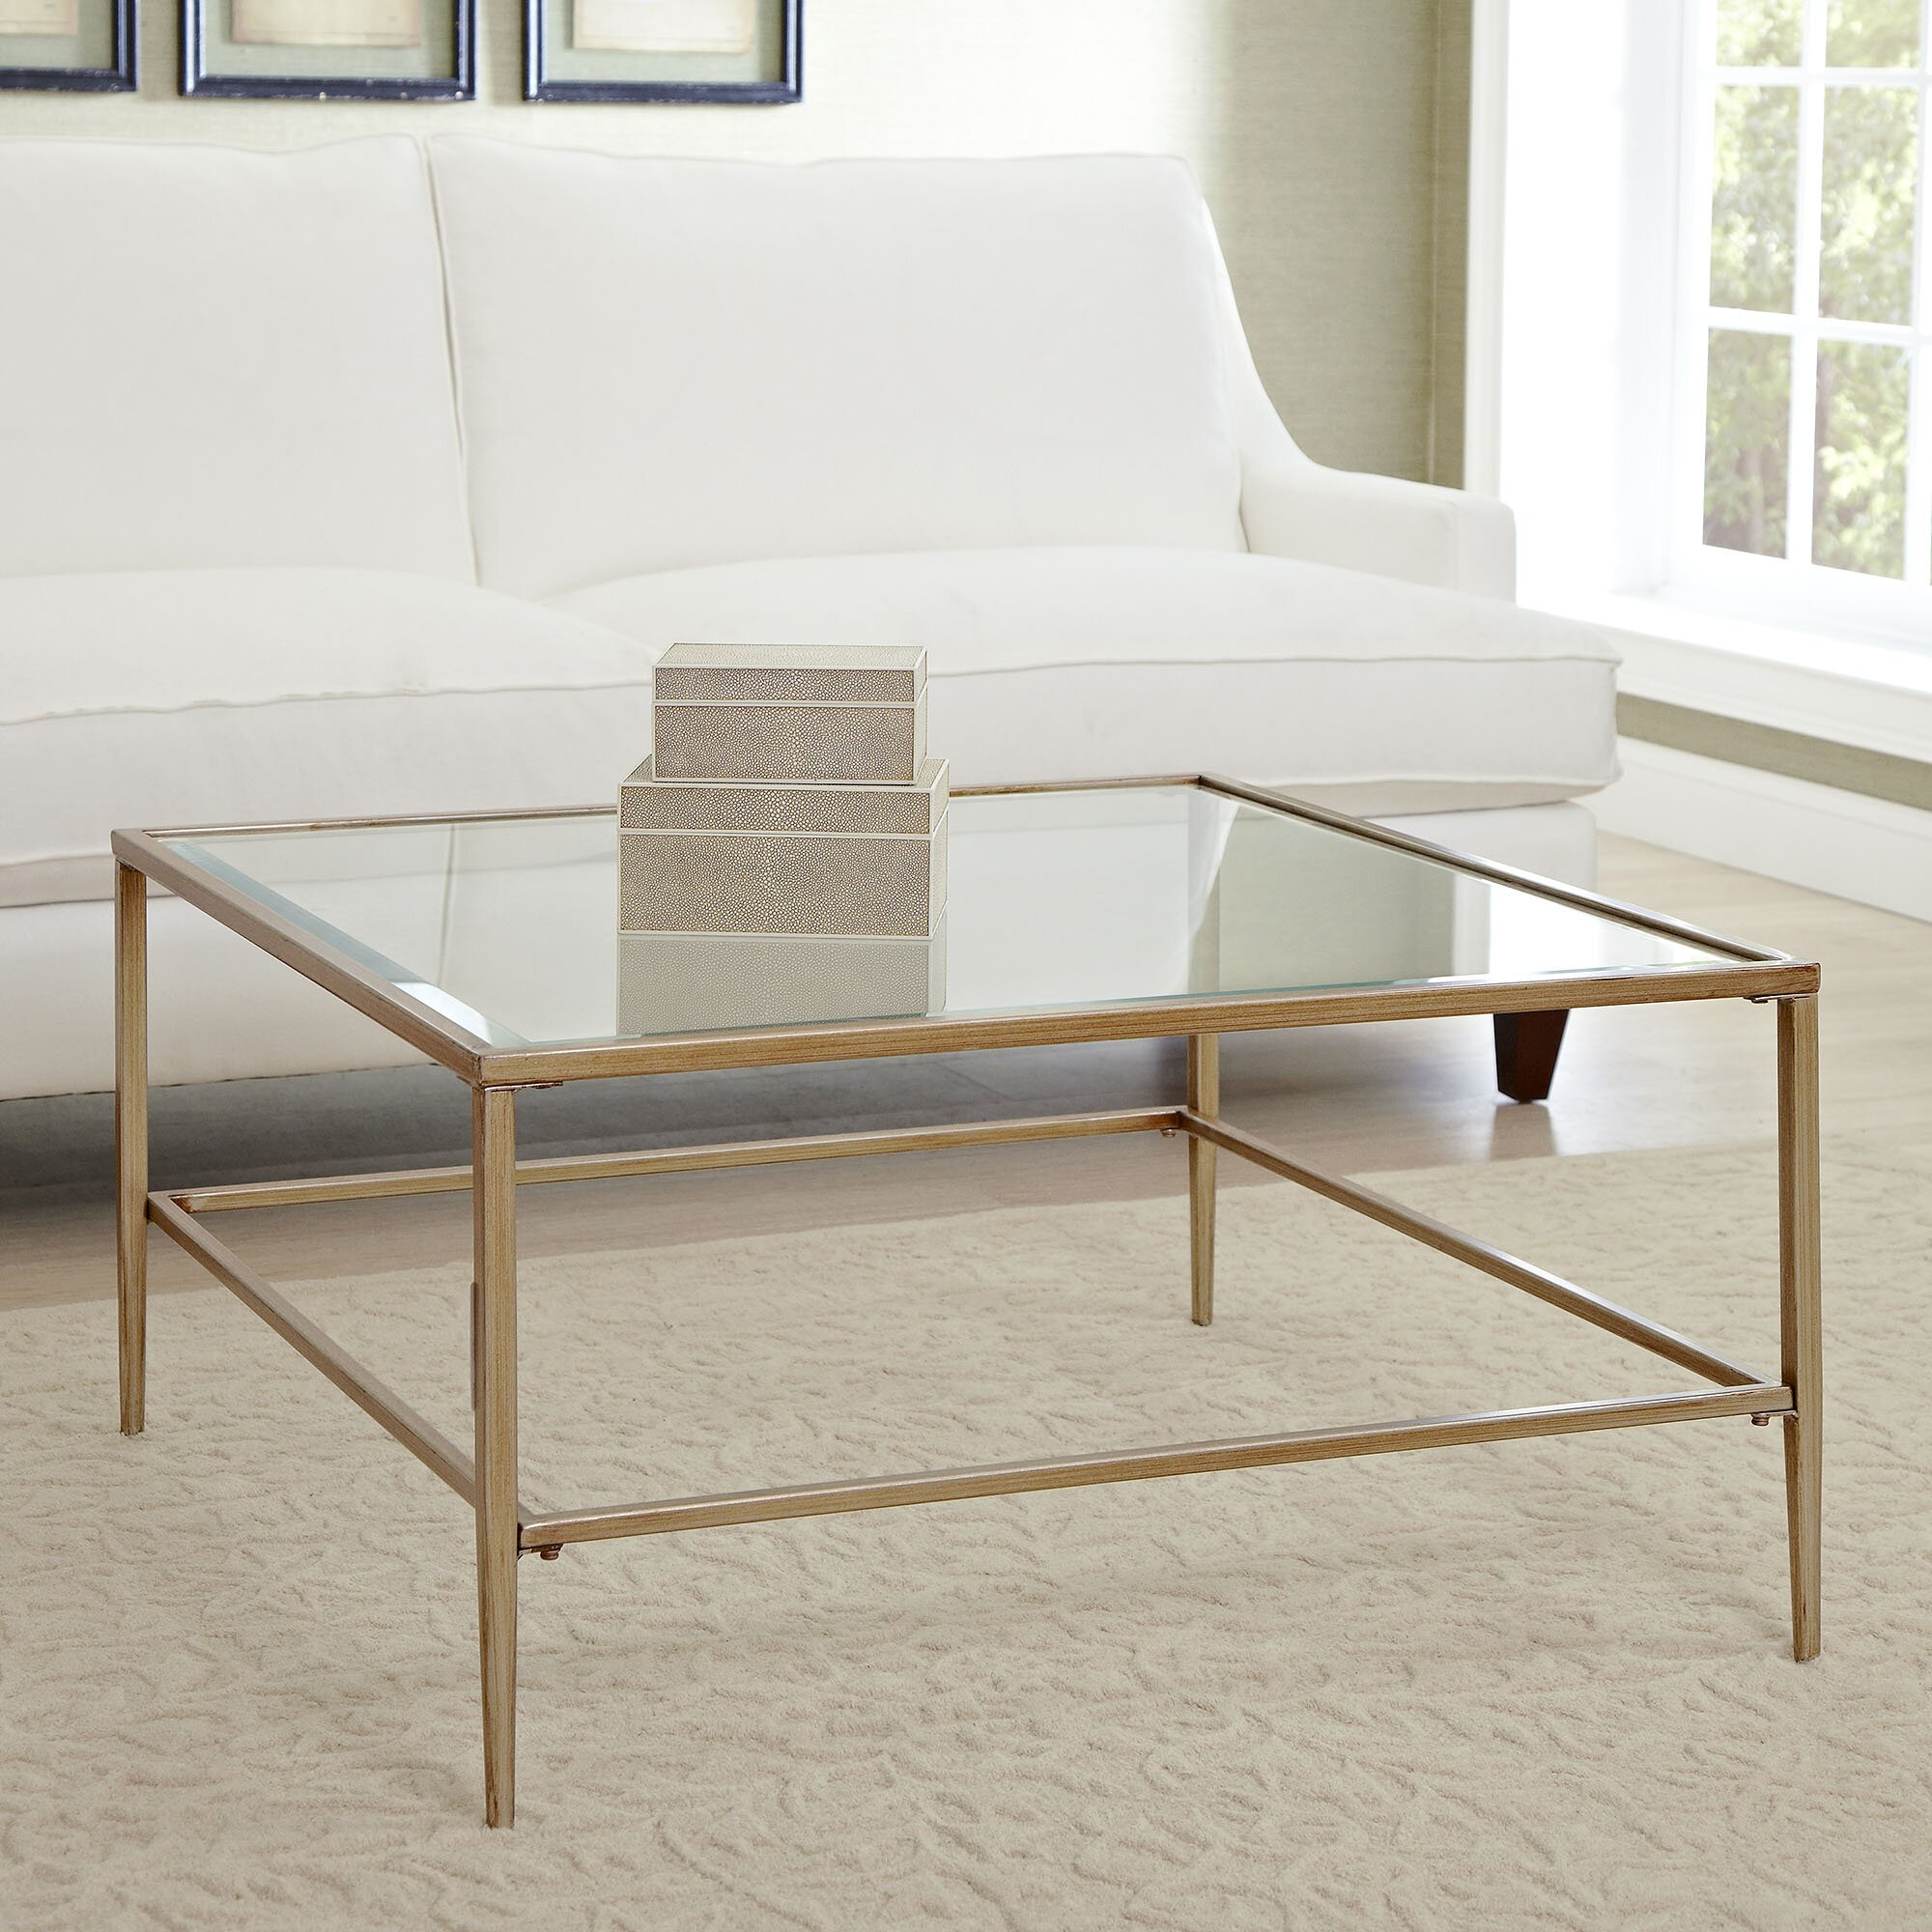 birch lane nash square coffee table reviews wayfair. Black Bedroom Furniture Sets. Home Design Ideas